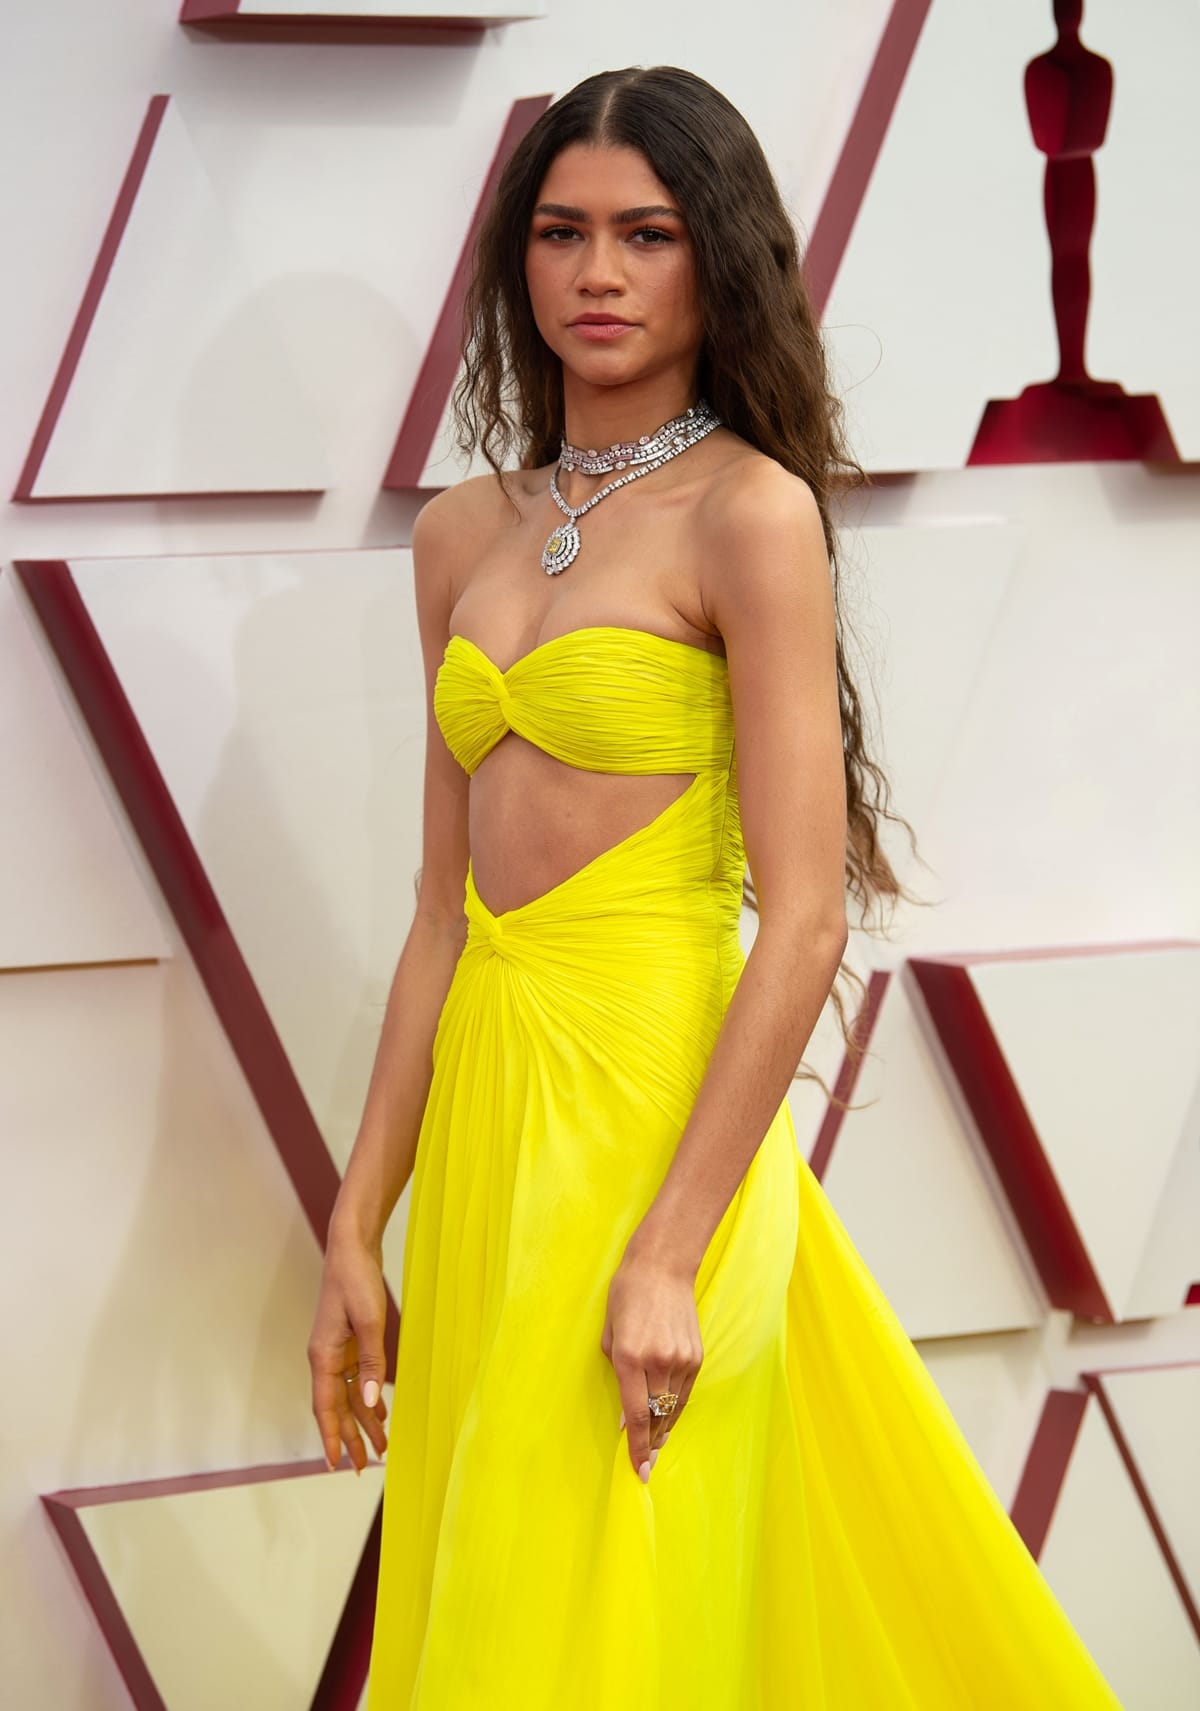 Zendaya in a yellow Valentino dress attends the 93rd Annual Academy Awards